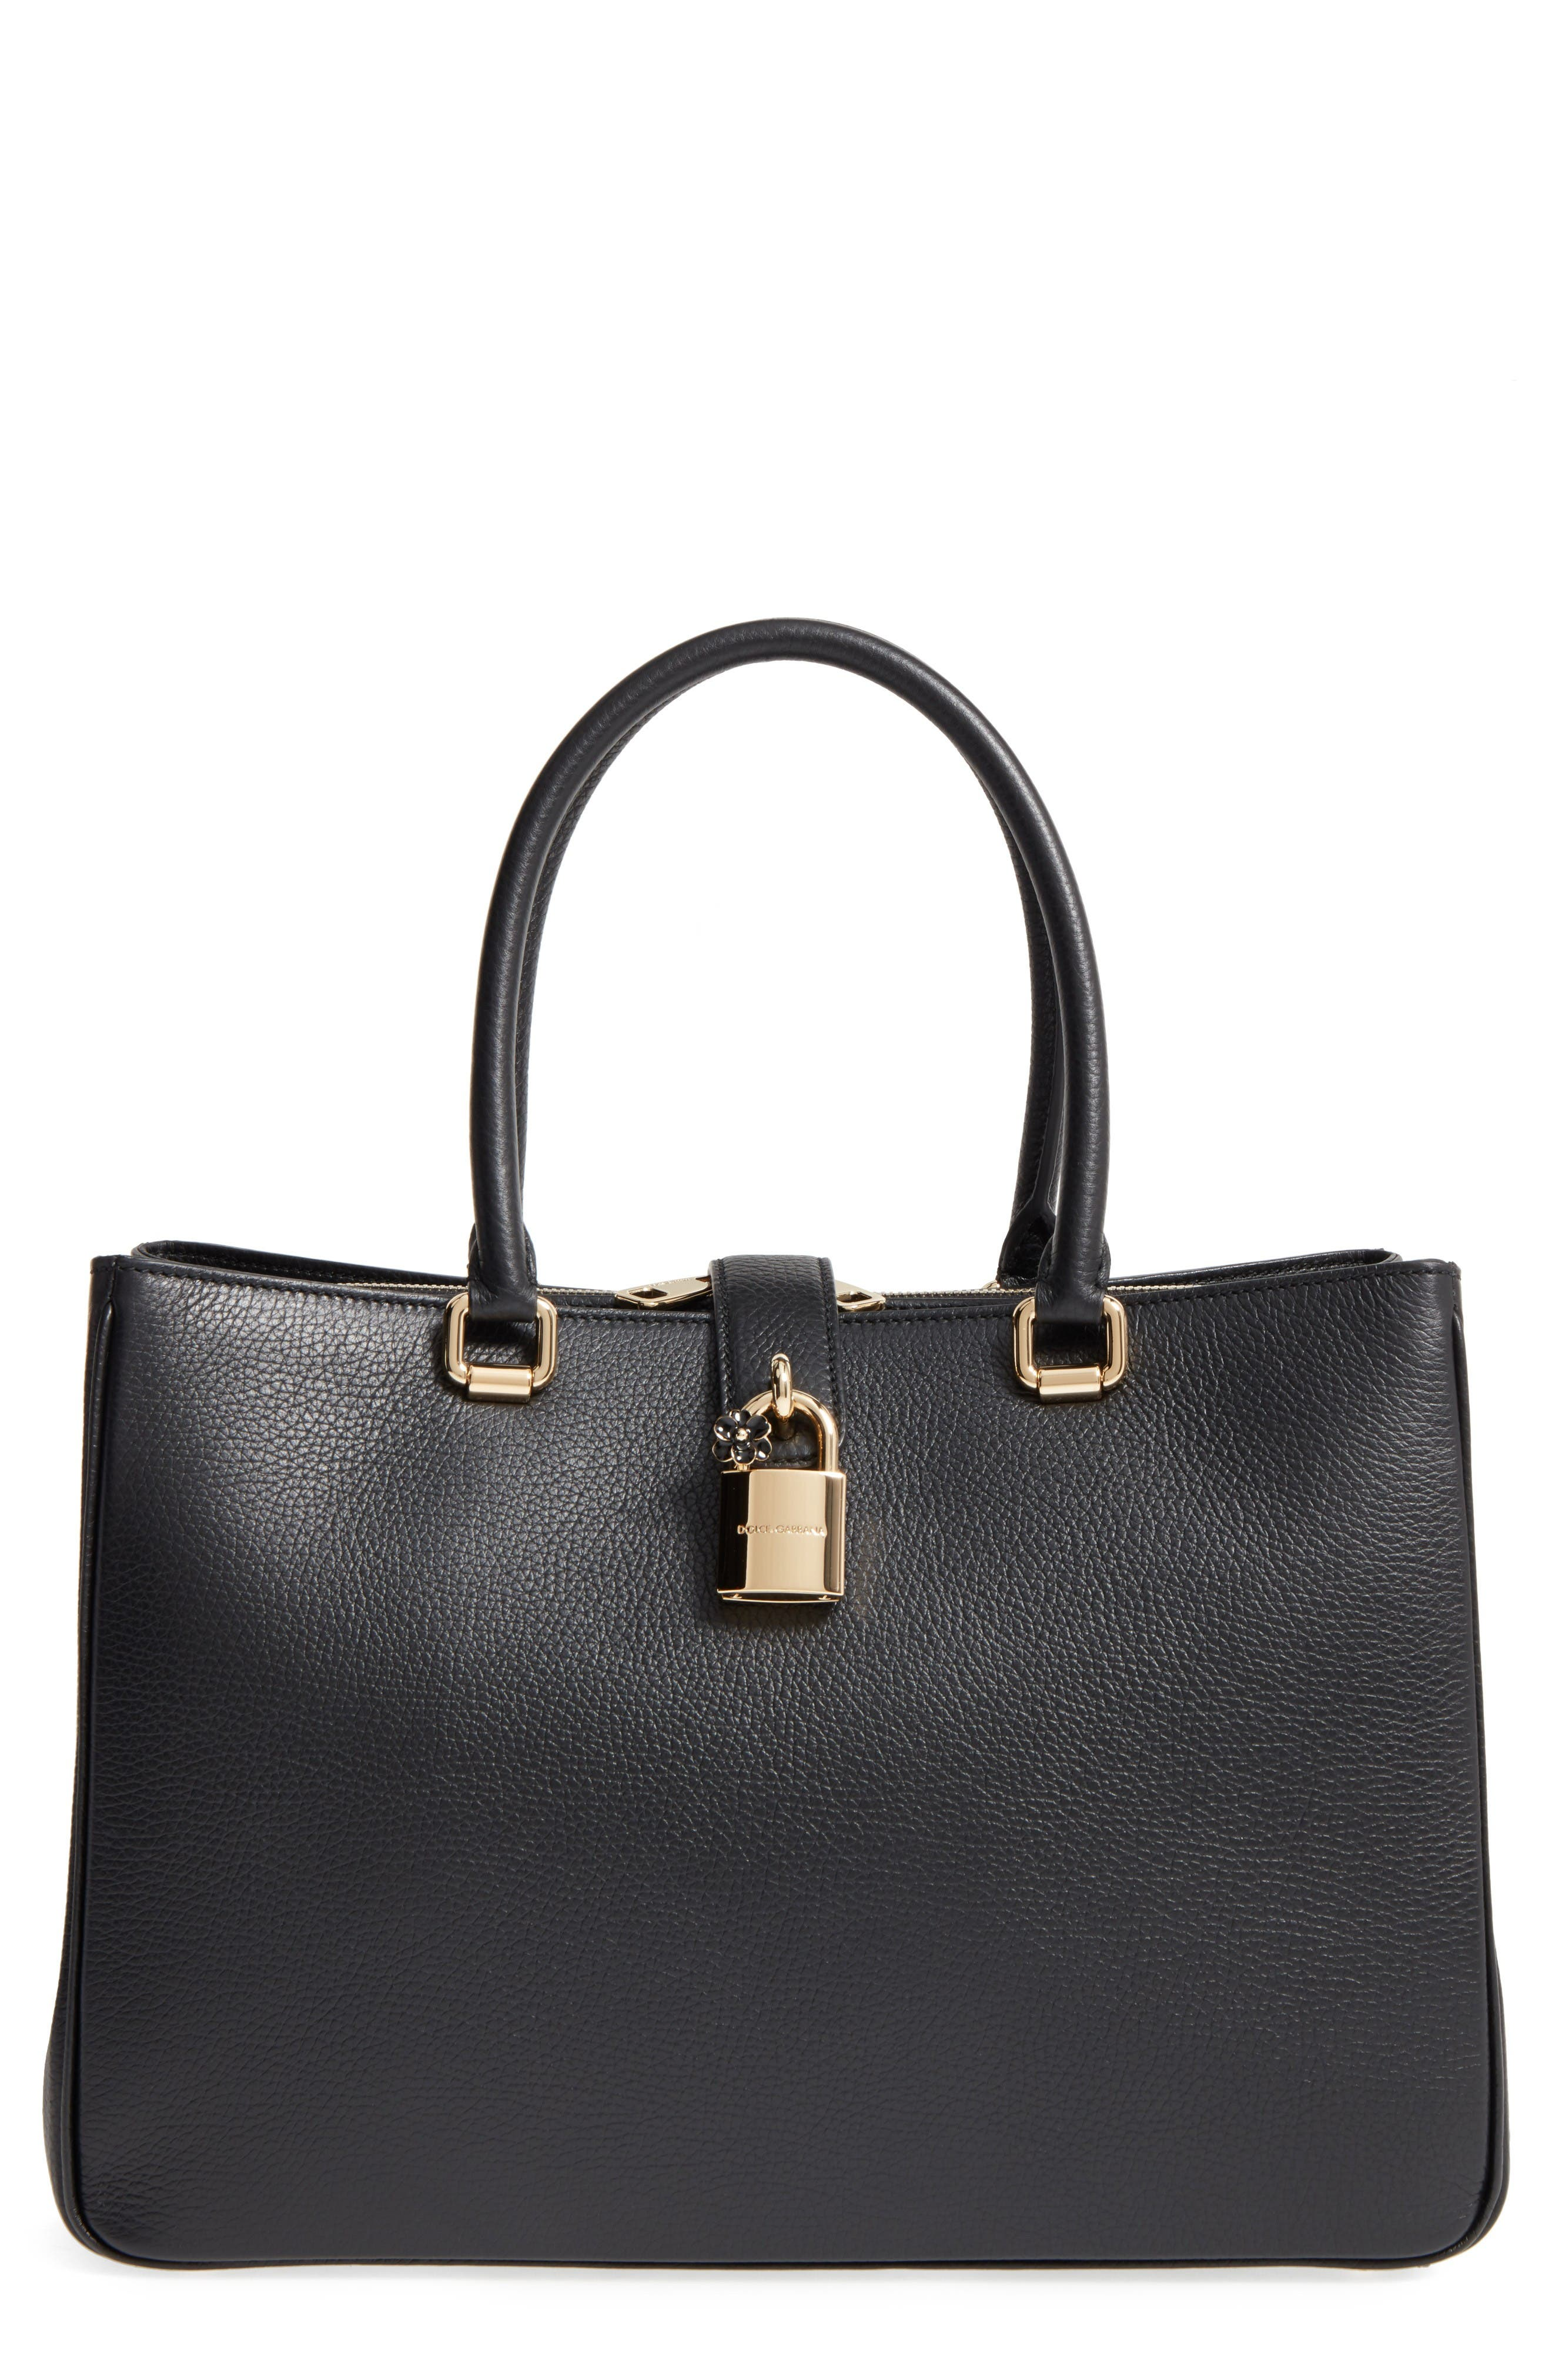 Main Image - Dolce&Gabbana Grained Leather Shopper